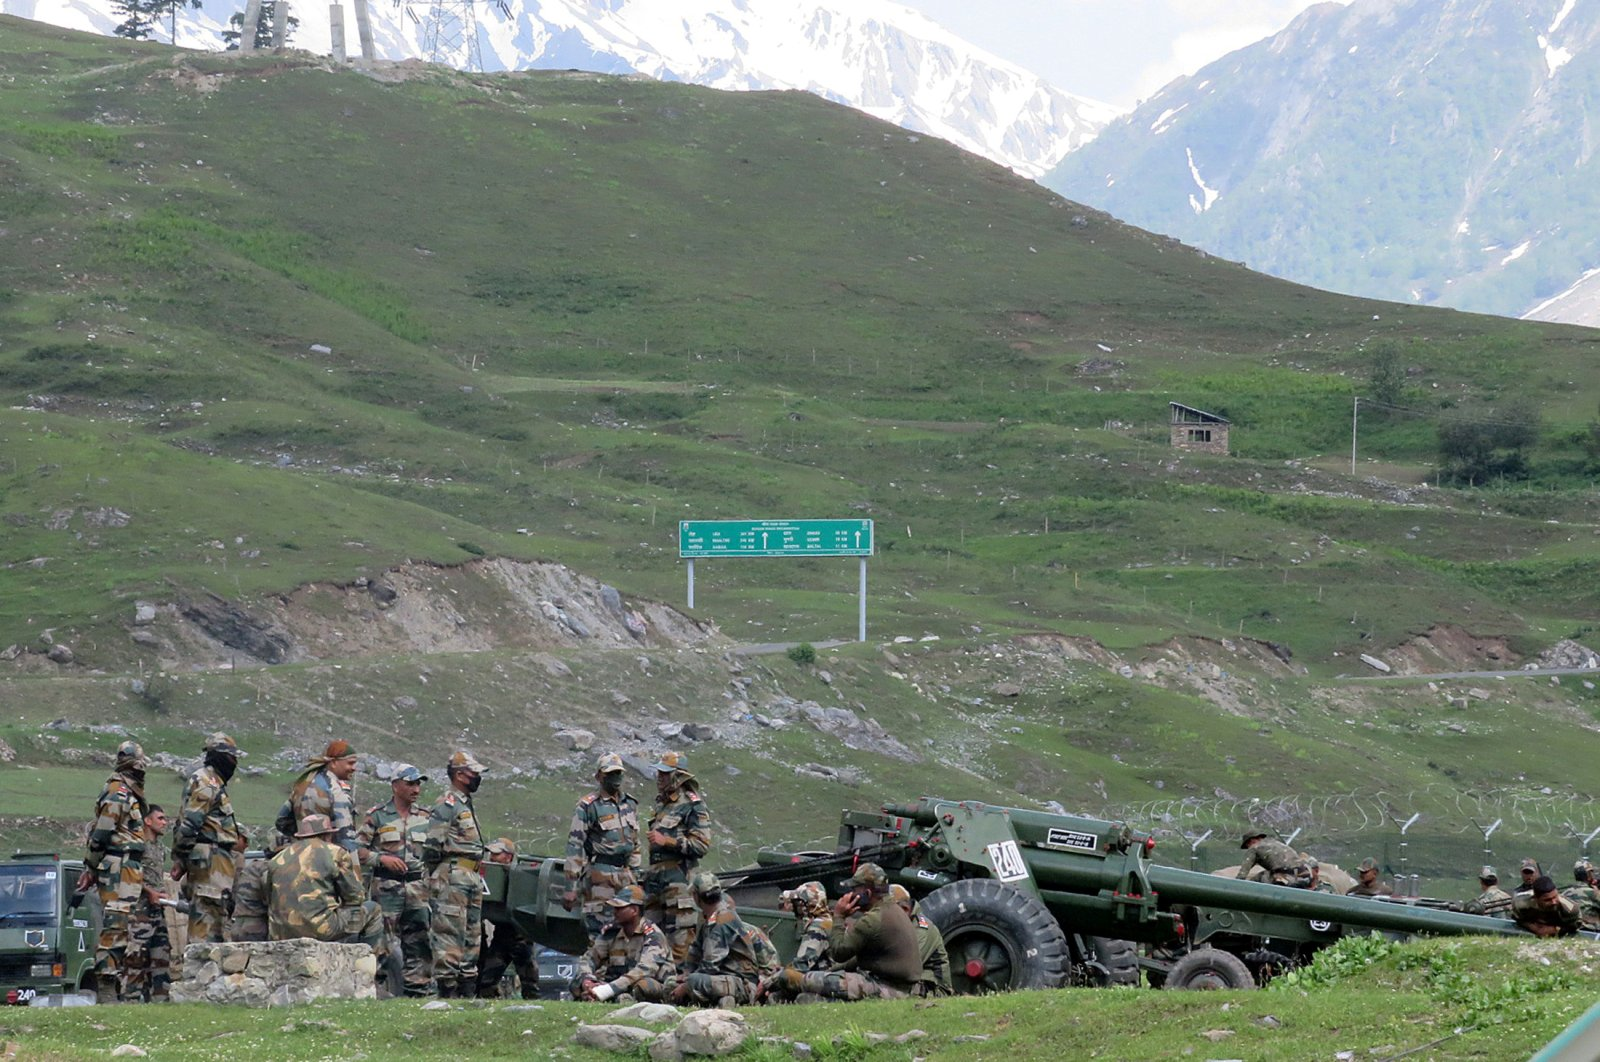 Indian army soldiers rest next to artillery guns at a makeshift transit camp before heading to Ladakh, near Baltal, southeast of Srinagar, June 16, 2020. (Reuters Photo)